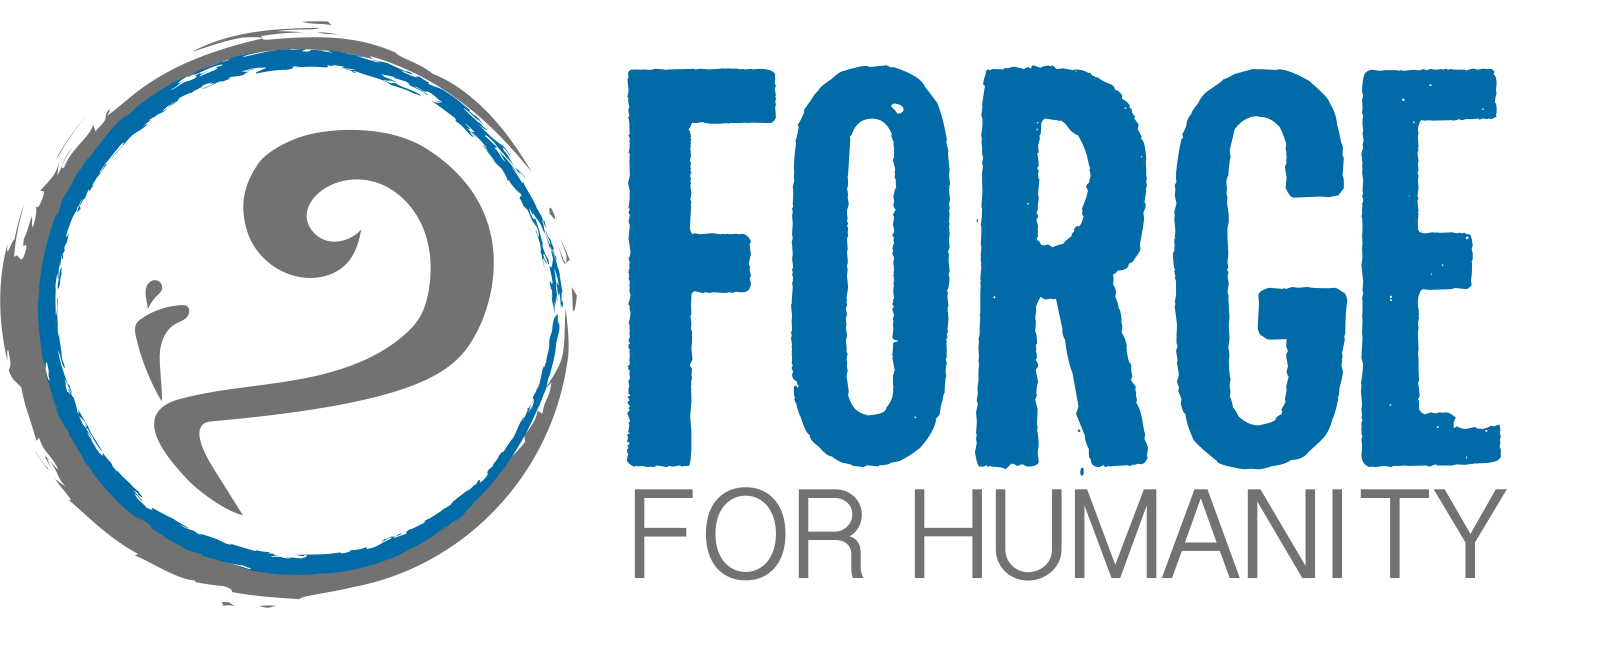 FORGE for humanity logo